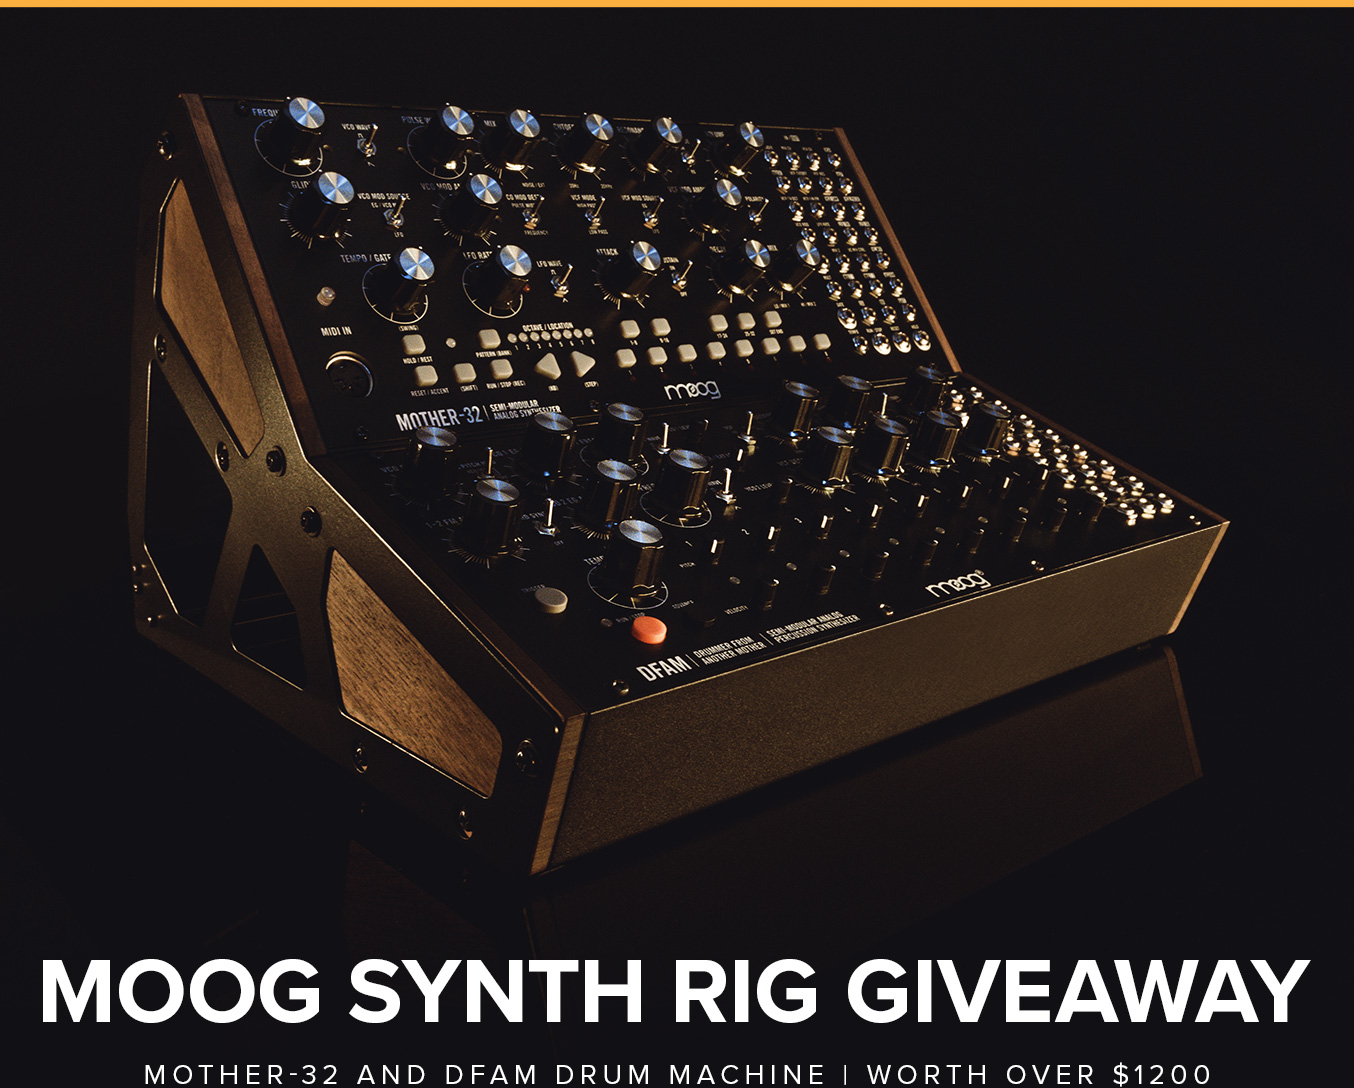 Moog Synth Rig Giveaway